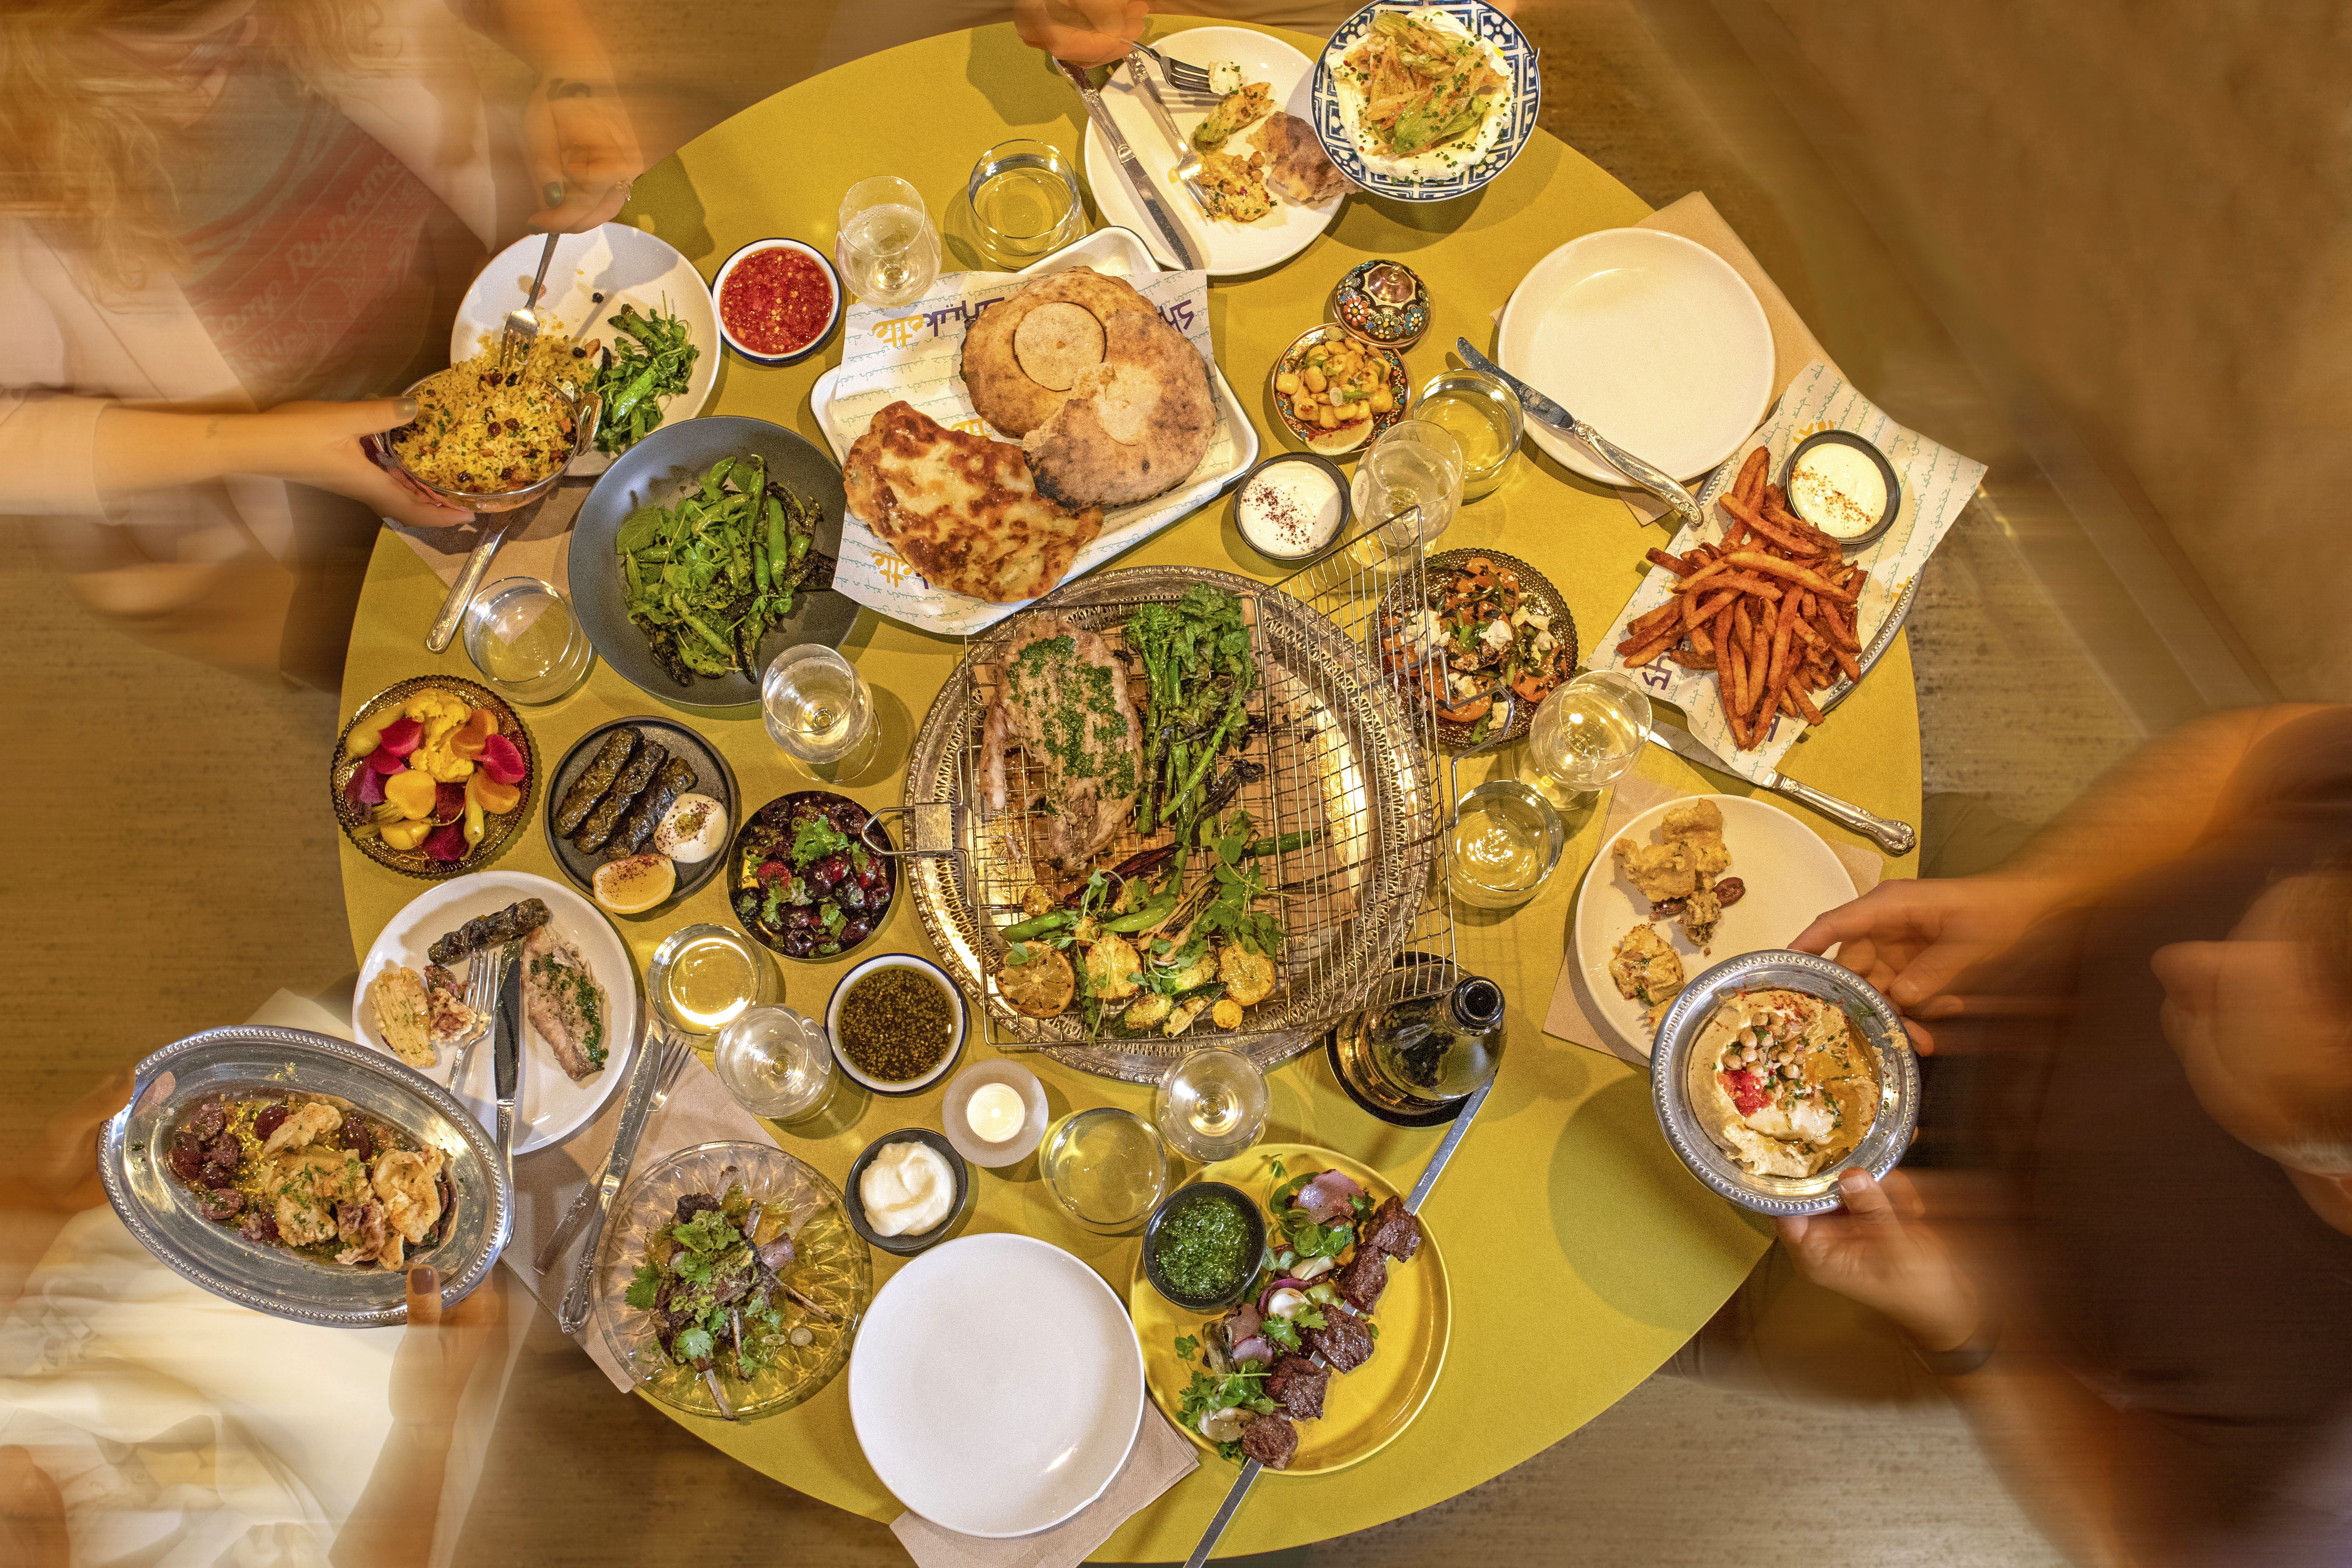 Three people hold plates and dishes around a yellow table filled with spreads of vegetables, meats, breads, and dips